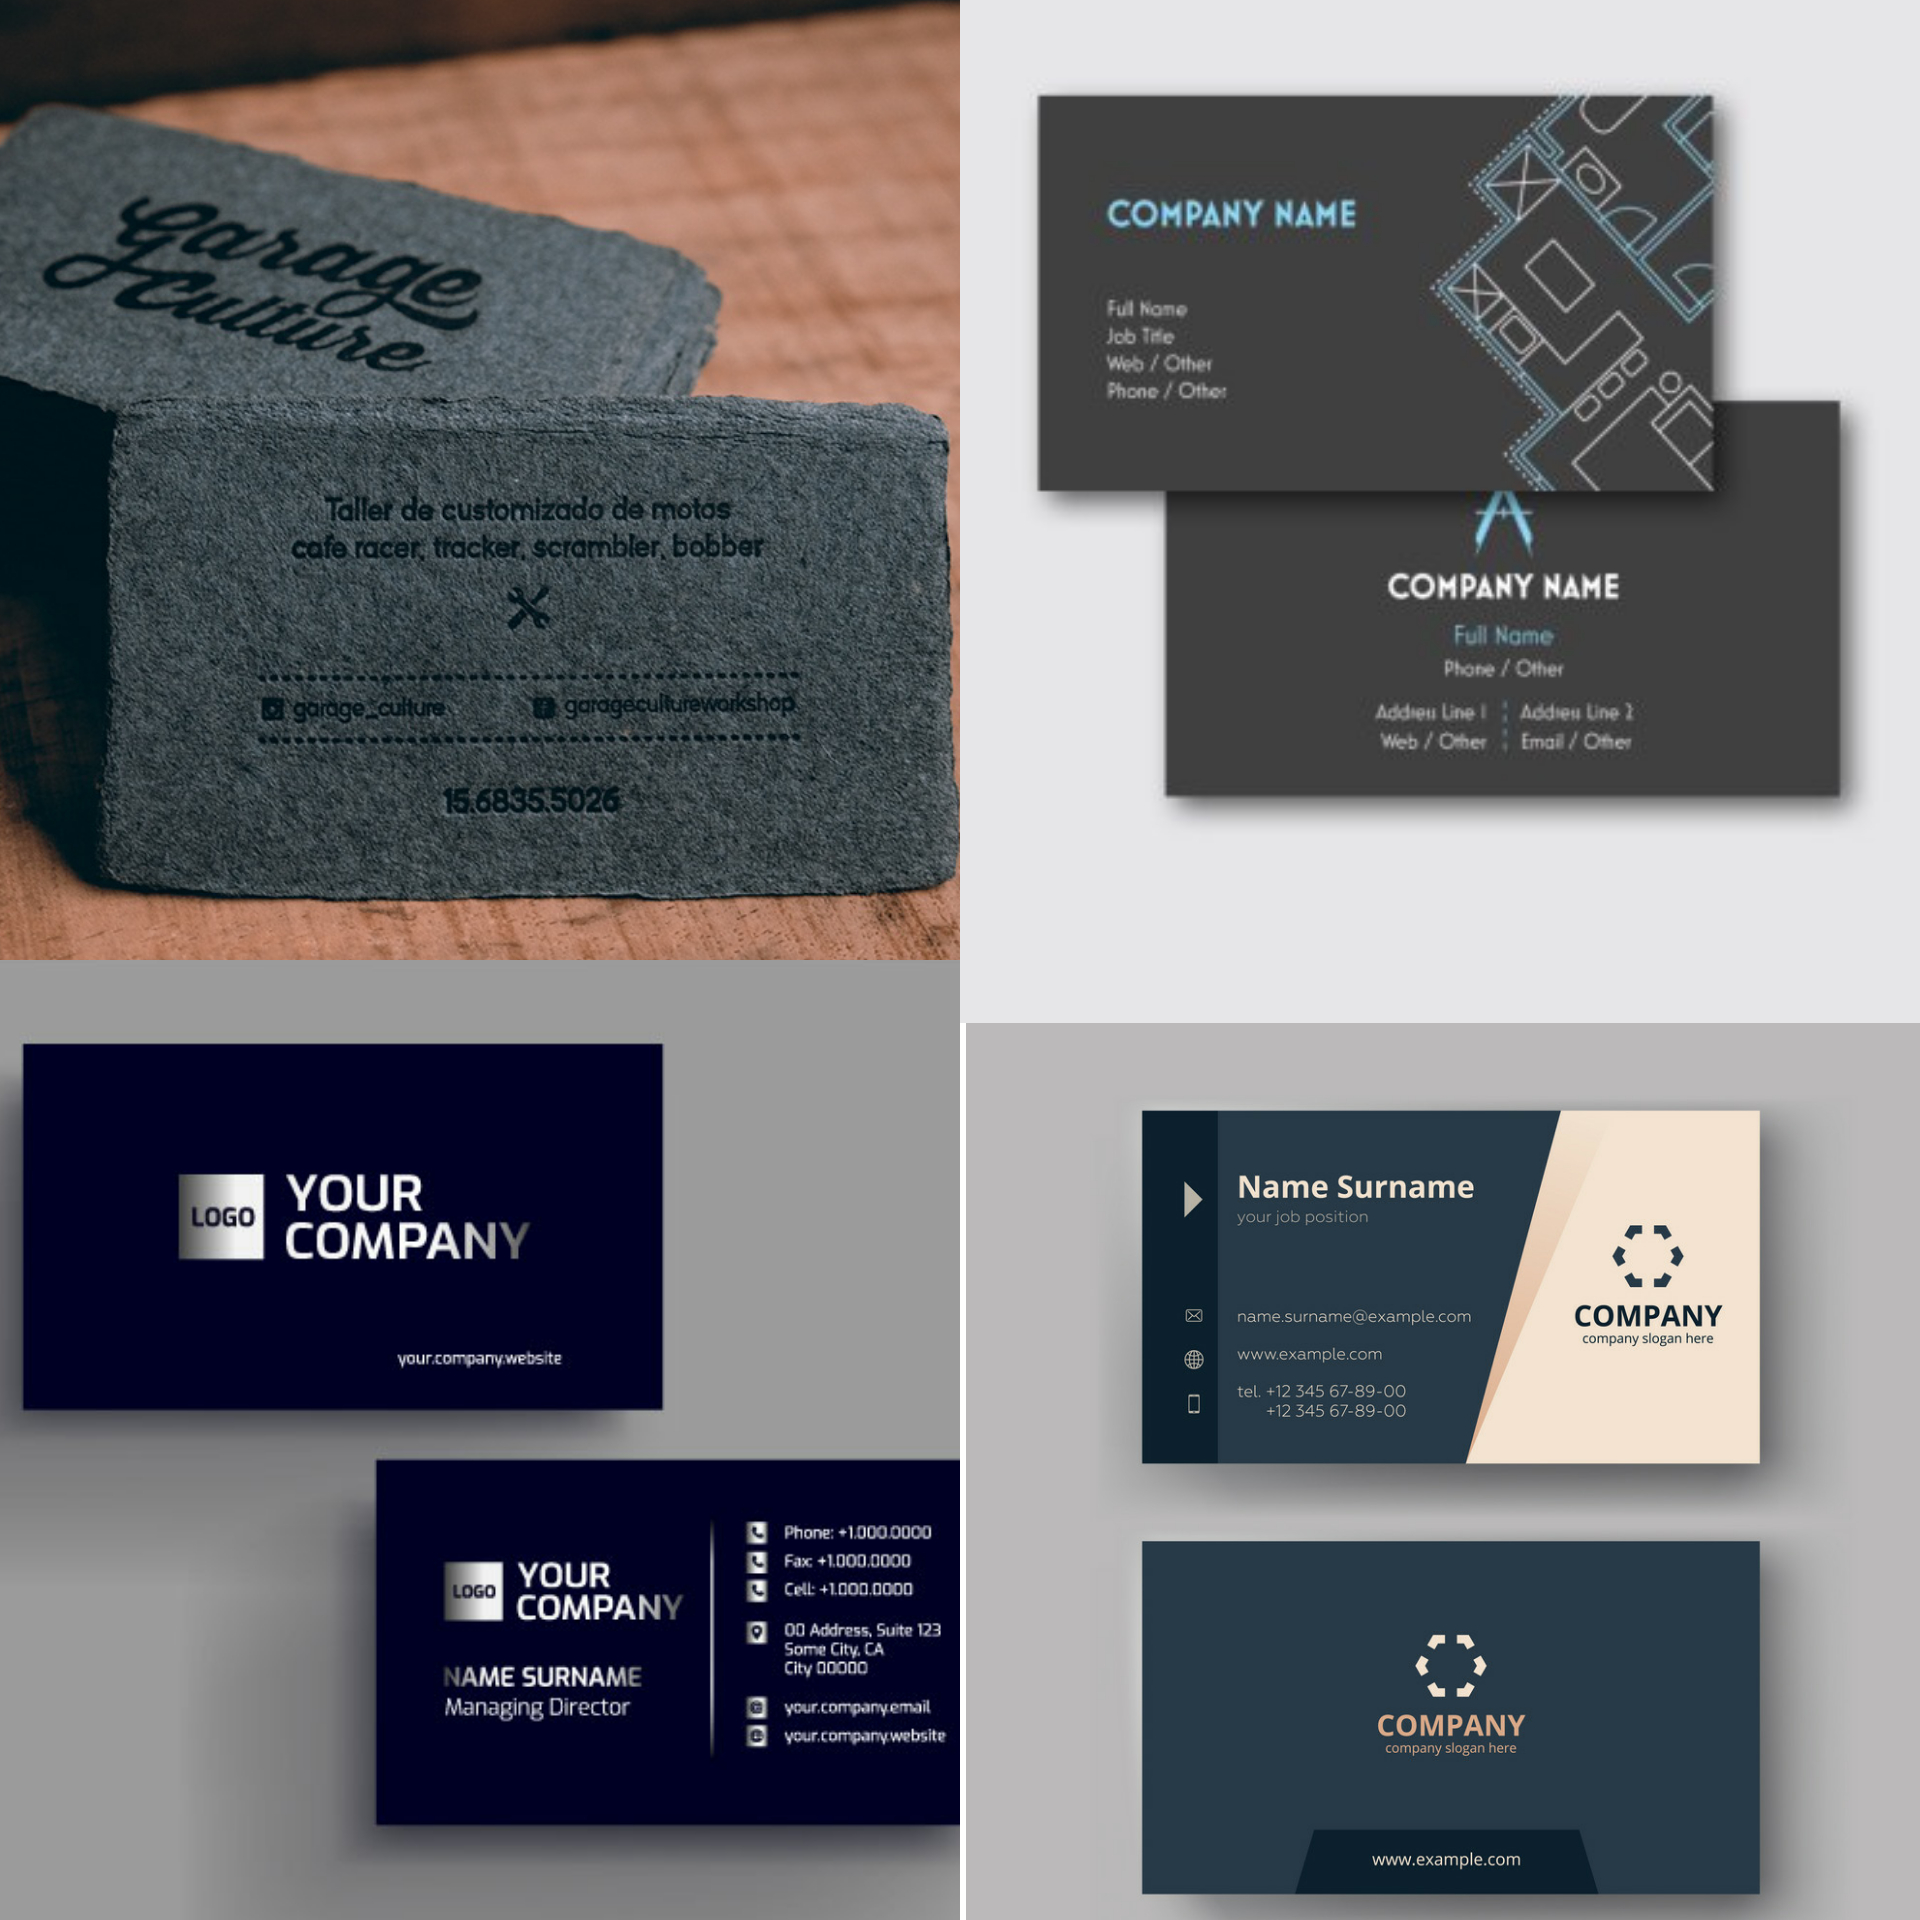 I Will Design Stunning and Professional Business Card